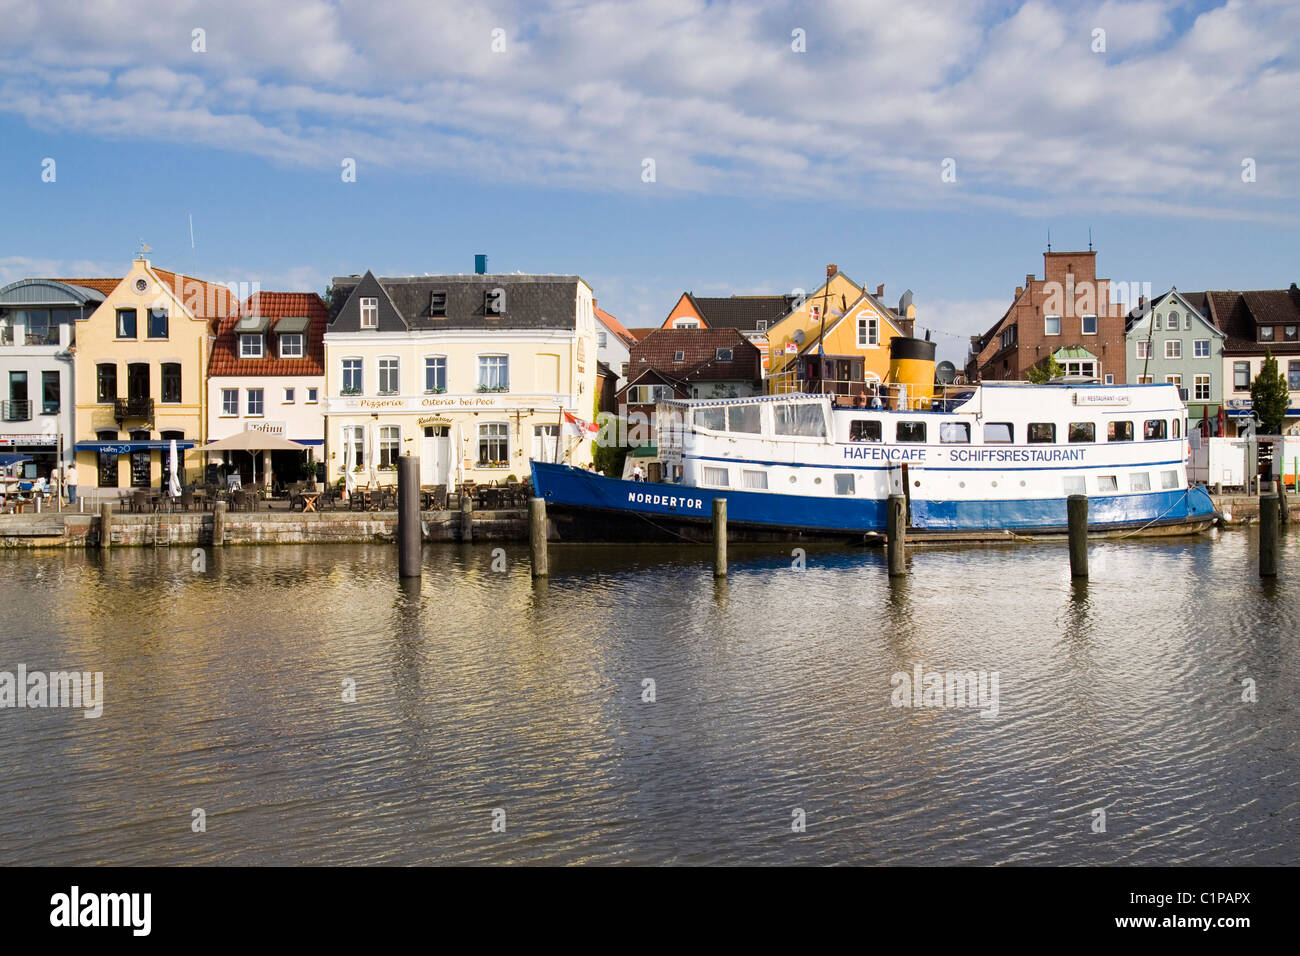 Germany, Husum, ferry in harbour lined with buildings - Stock Image